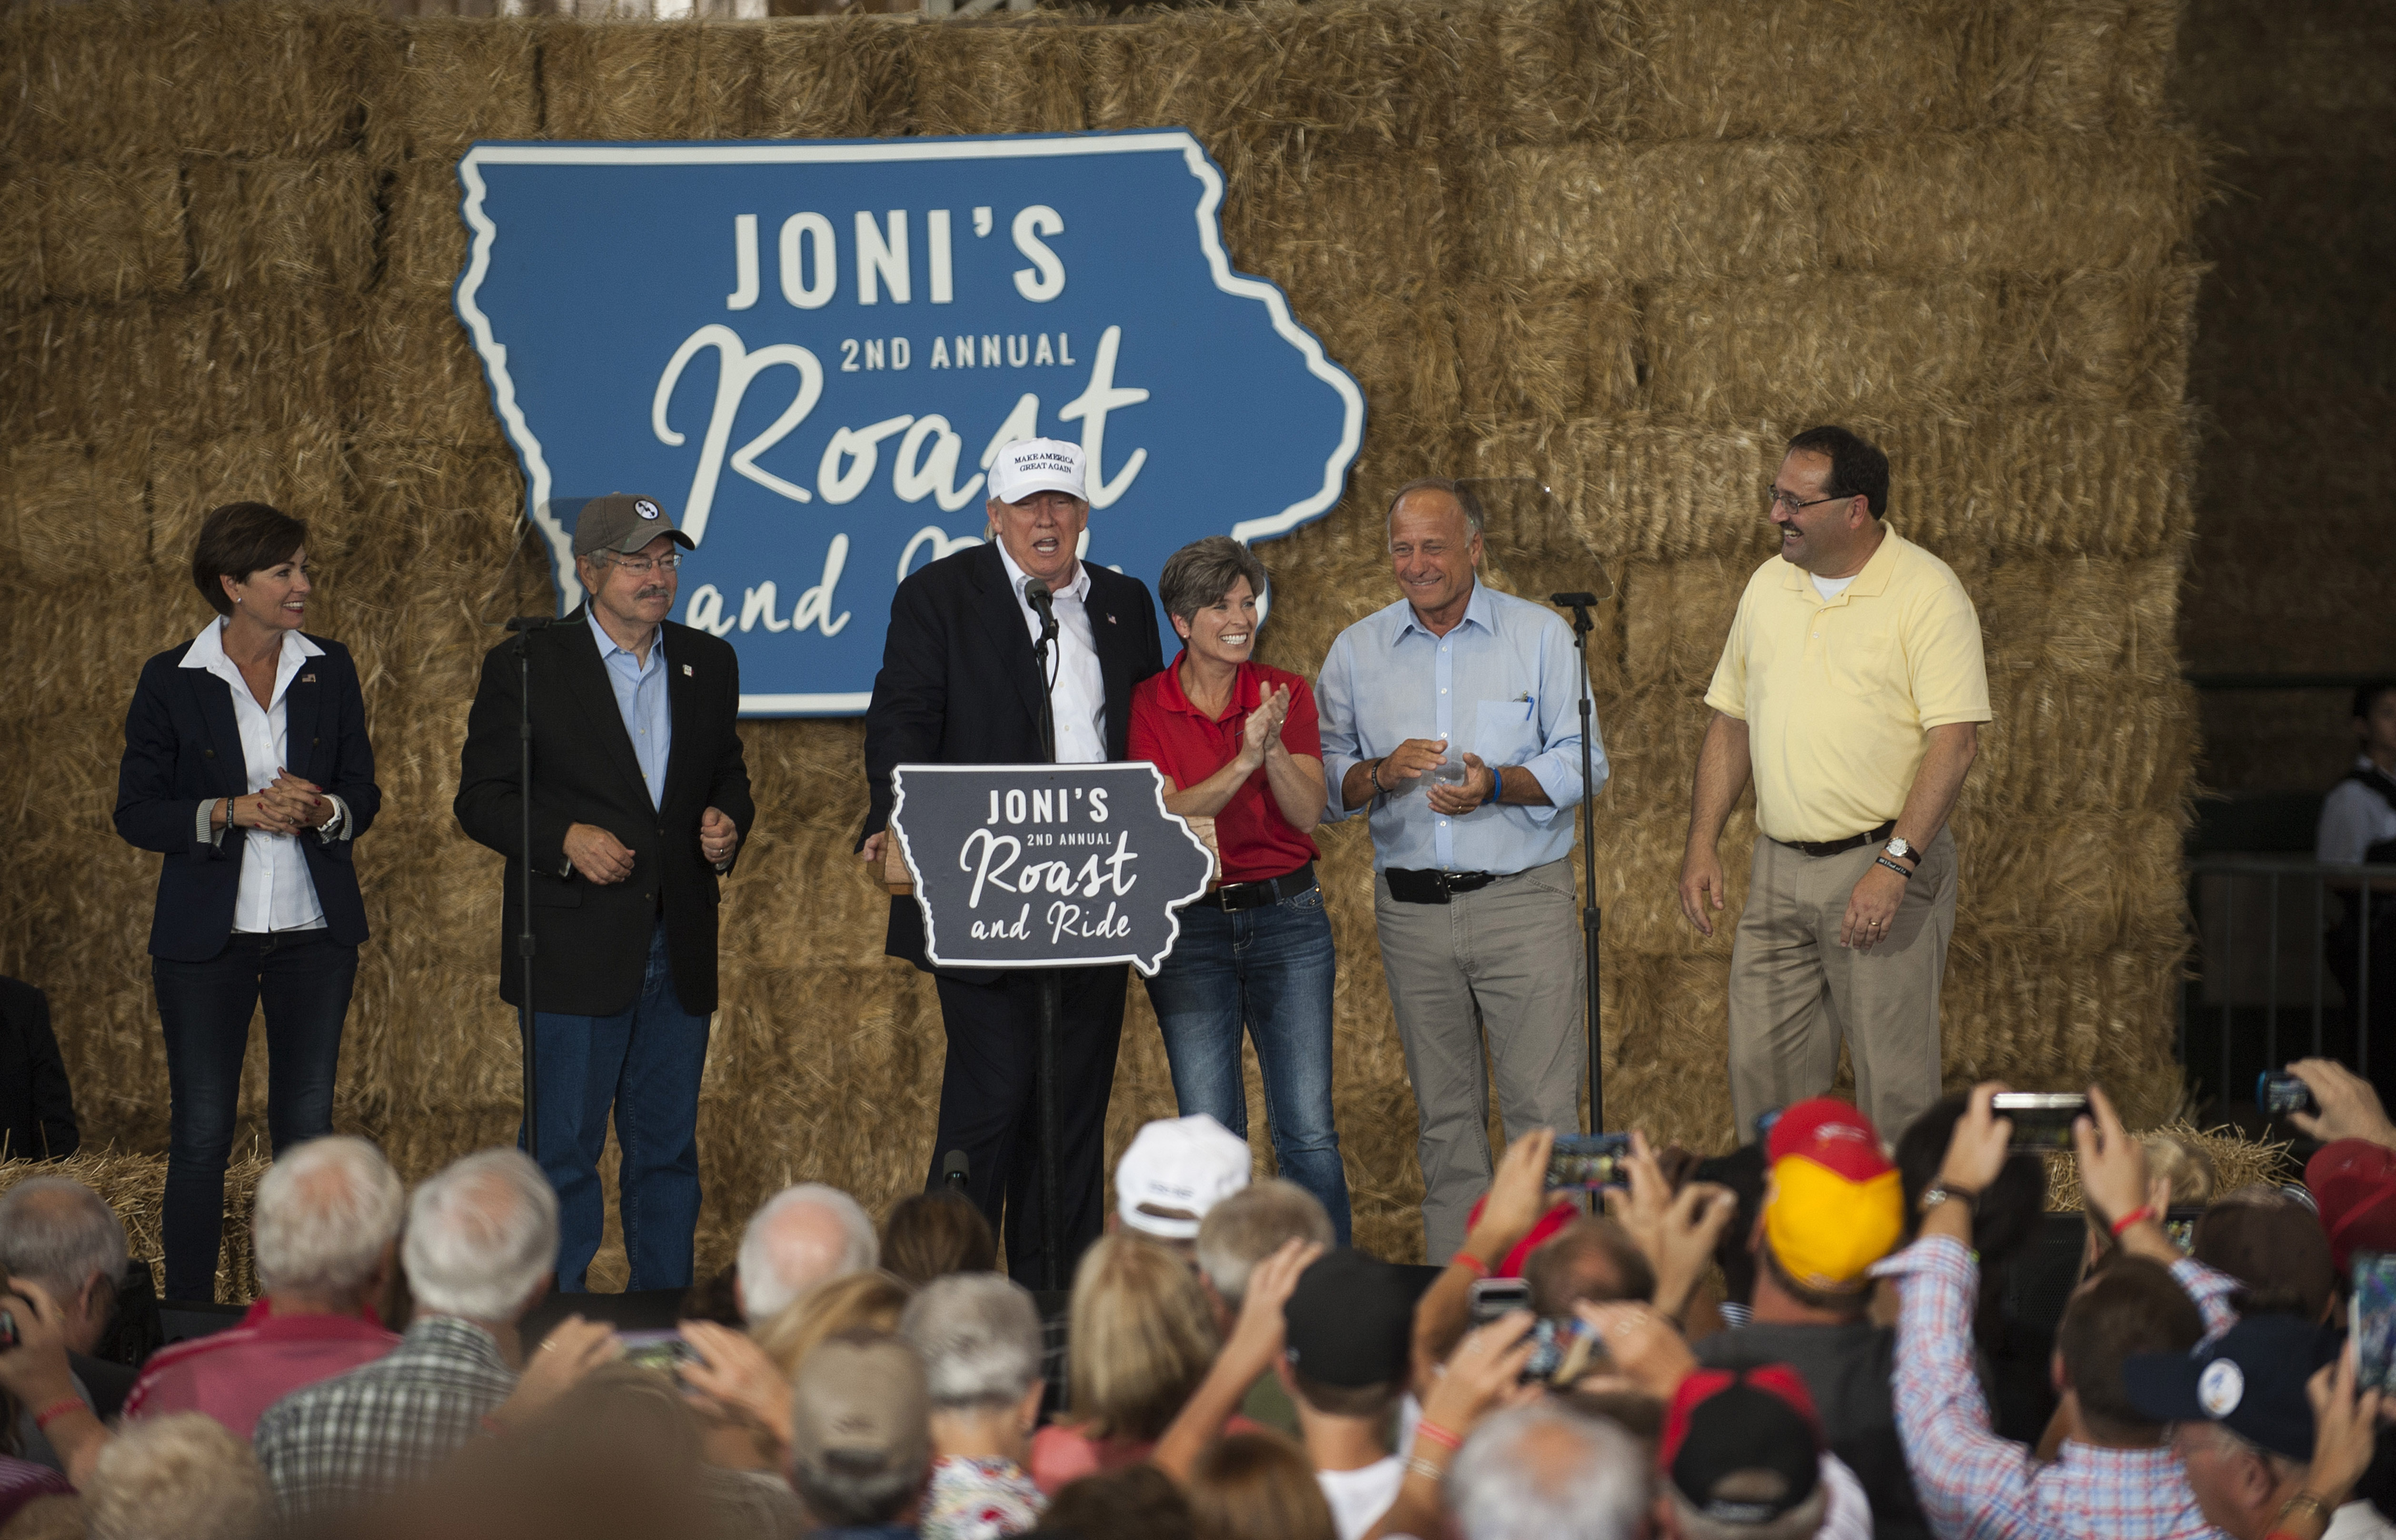 Kim Reynolds, Lieutenant Governor (R-IA), Left, Terry Branstad, Governor (R-IA), Republican presidential nominee Donald Trump, Sen. Joni Ernst (R-IA), Jeff Kaufmann, Republican Party of Iowa Chairman, and Rep. Steve King (R-IA) on stage at the 2nd annual Joni Ernst Roast and Ride event on August 27, 2016 in Des Moines, Iowa. (Stephen Maturen/Getty Images)